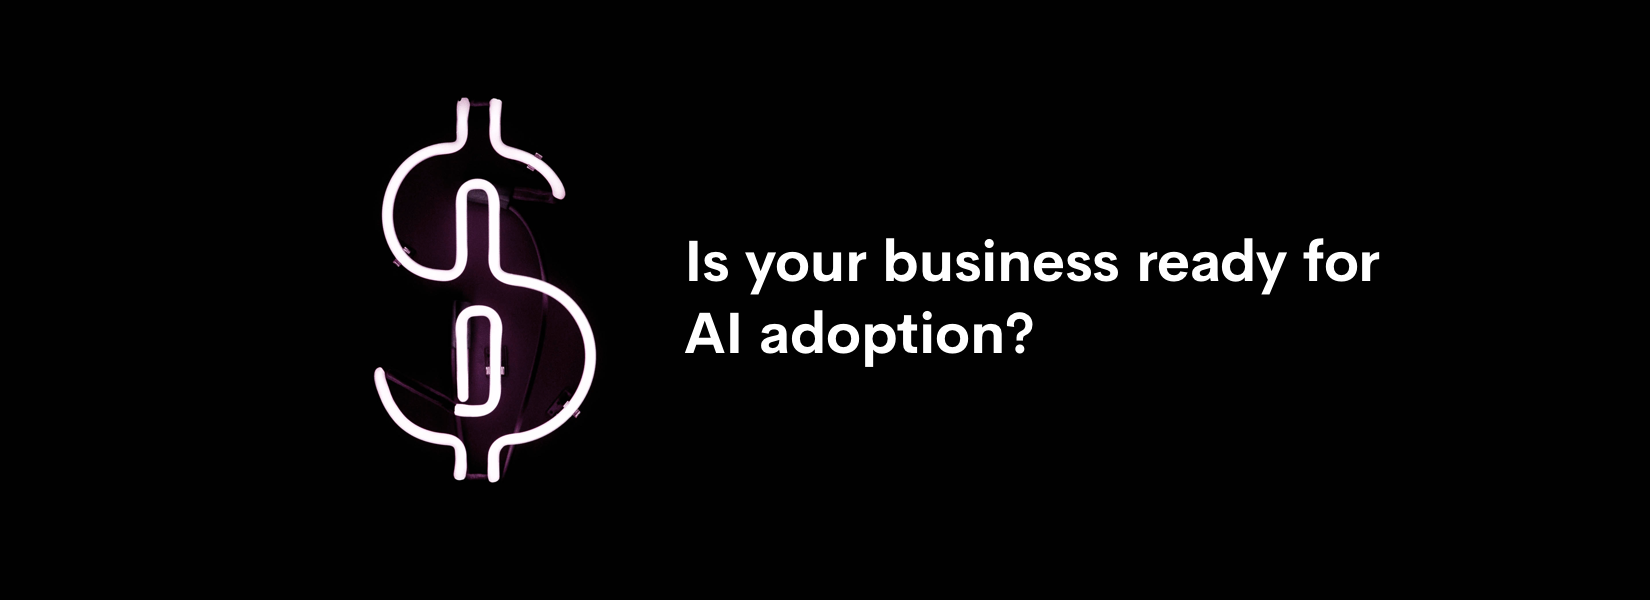 Is your business ready for AI adoption?